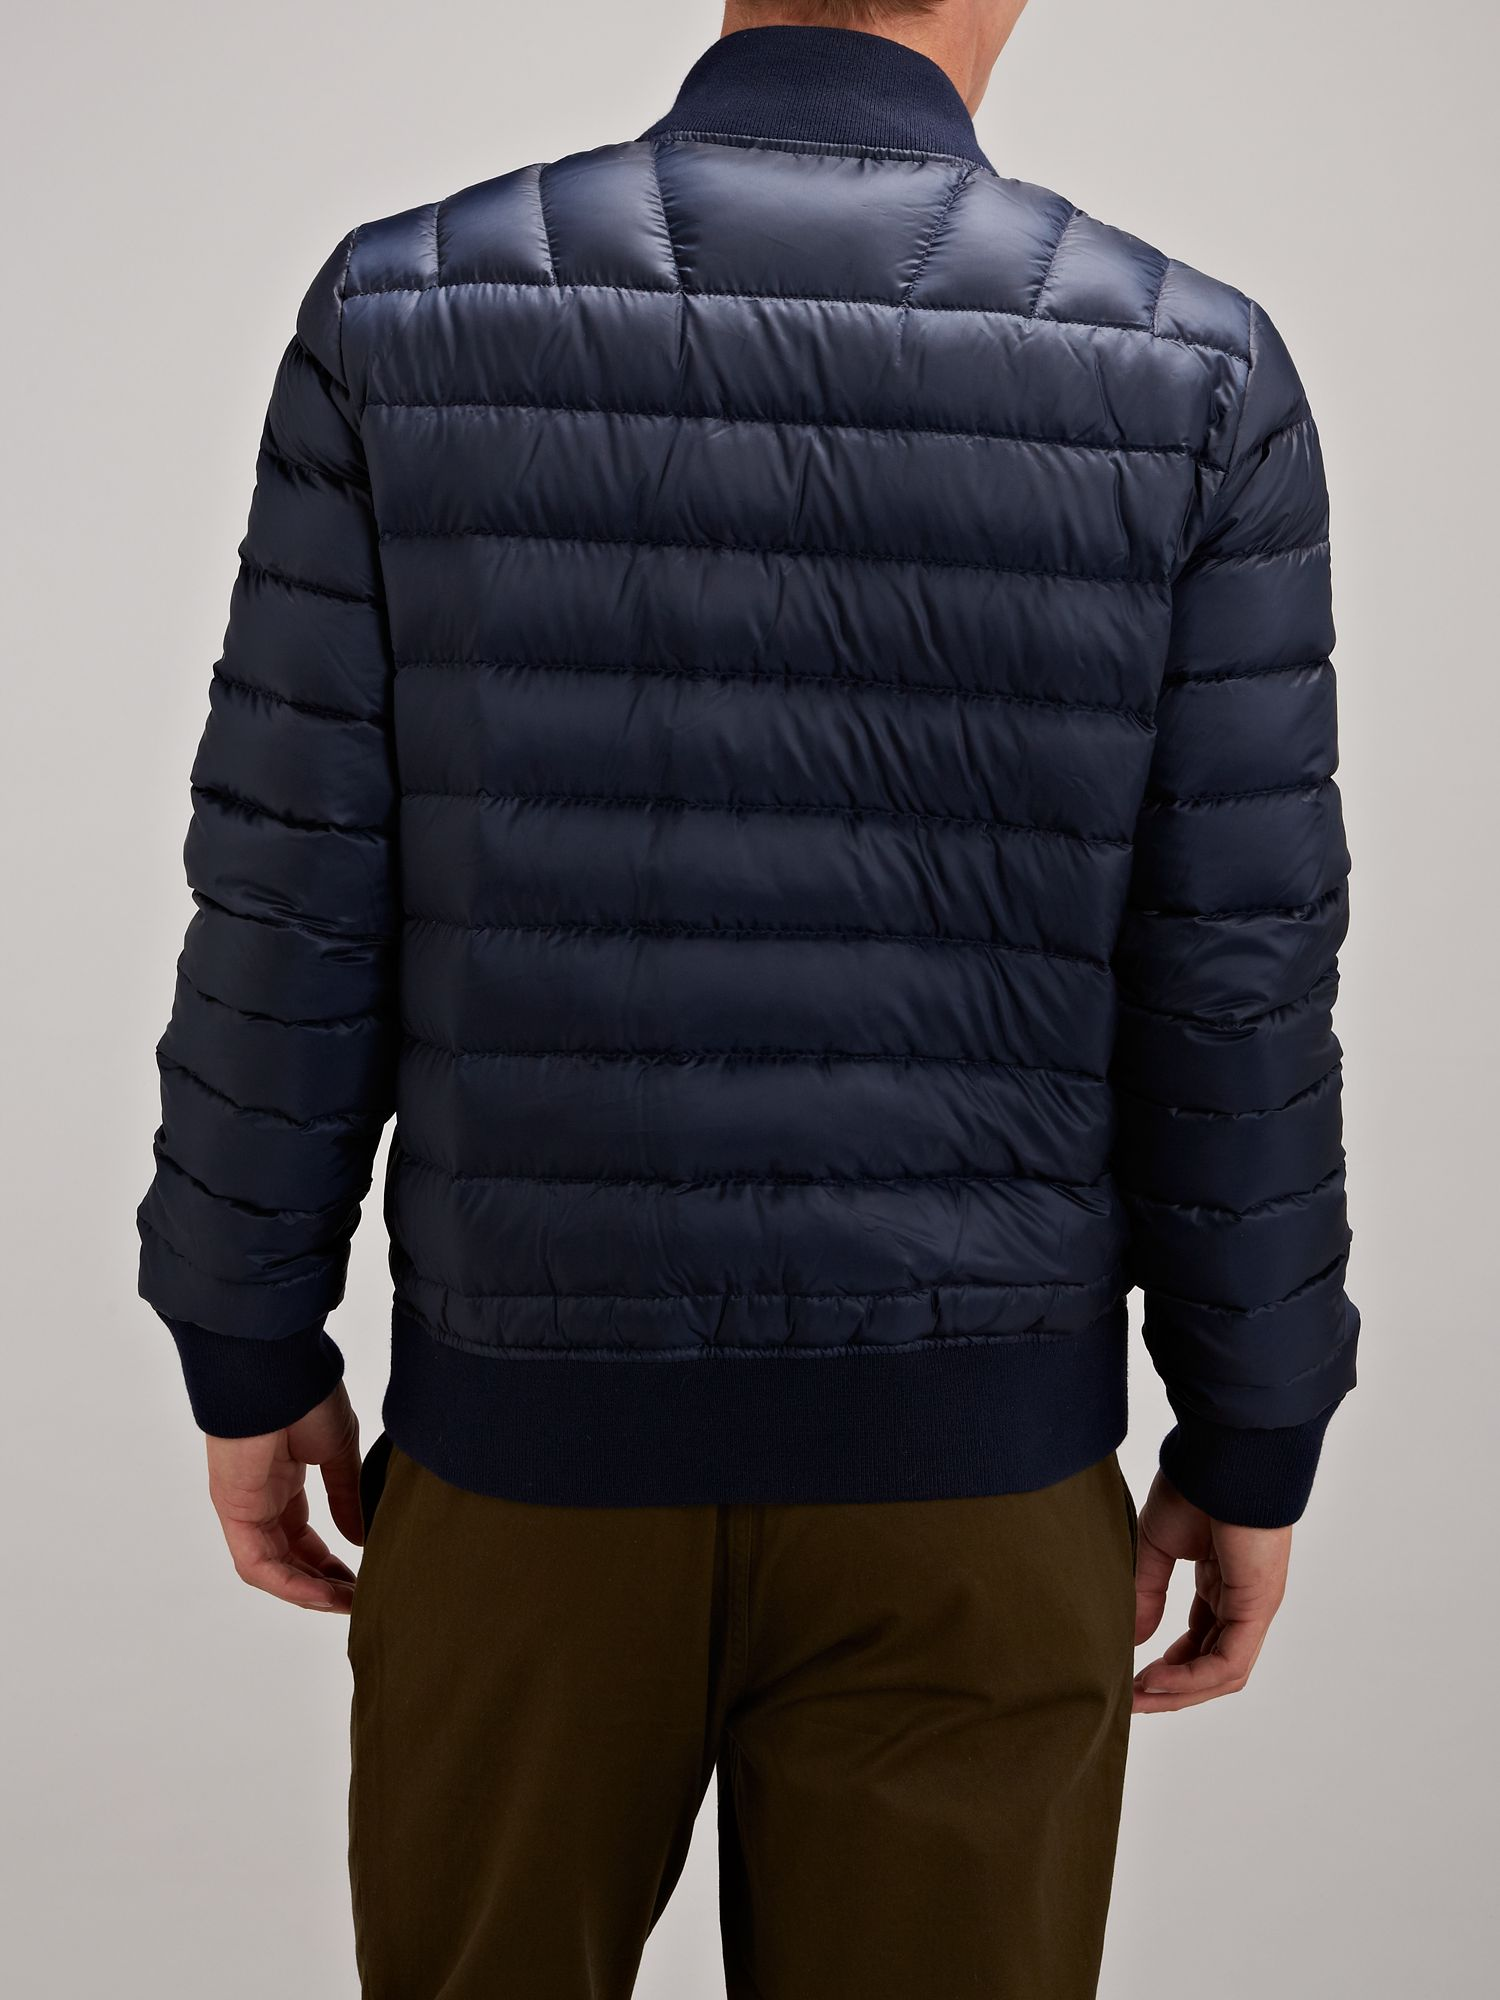 lacoste live puffa jacket in blue for men lyst. Black Bedroom Furniture Sets. Home Design Ideas